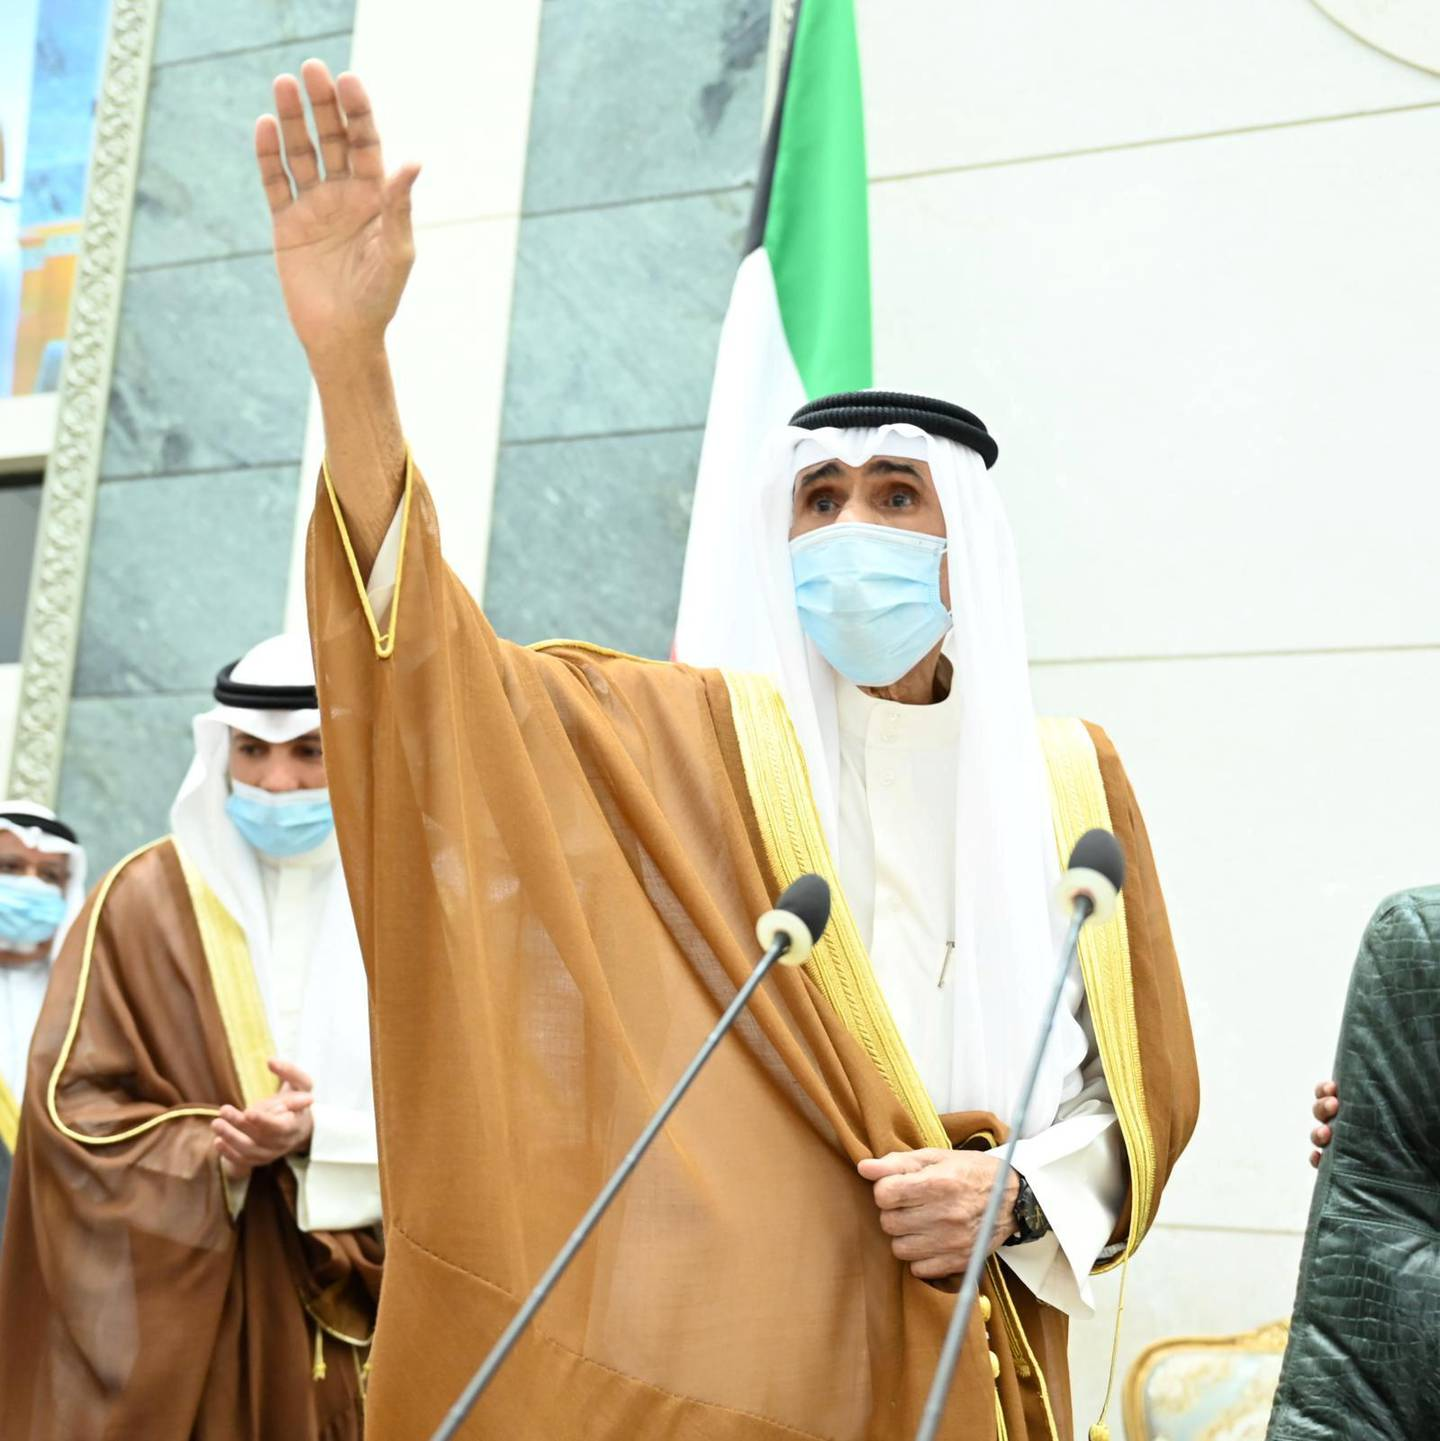 Kuwait's new Emir Nawaf al-Ahmad al-Sabah gestures as he arrives to take the oath of office at the parliament, in Kuwait City, Kuwait September 30, 2020. Kuwait News Agency/Handout via REUTERS ATTENTION EDITORS - THIS IMAGE WAS PROVIDED BY A THIRD PARTY. NO RESALES. NO ARCHIVES.